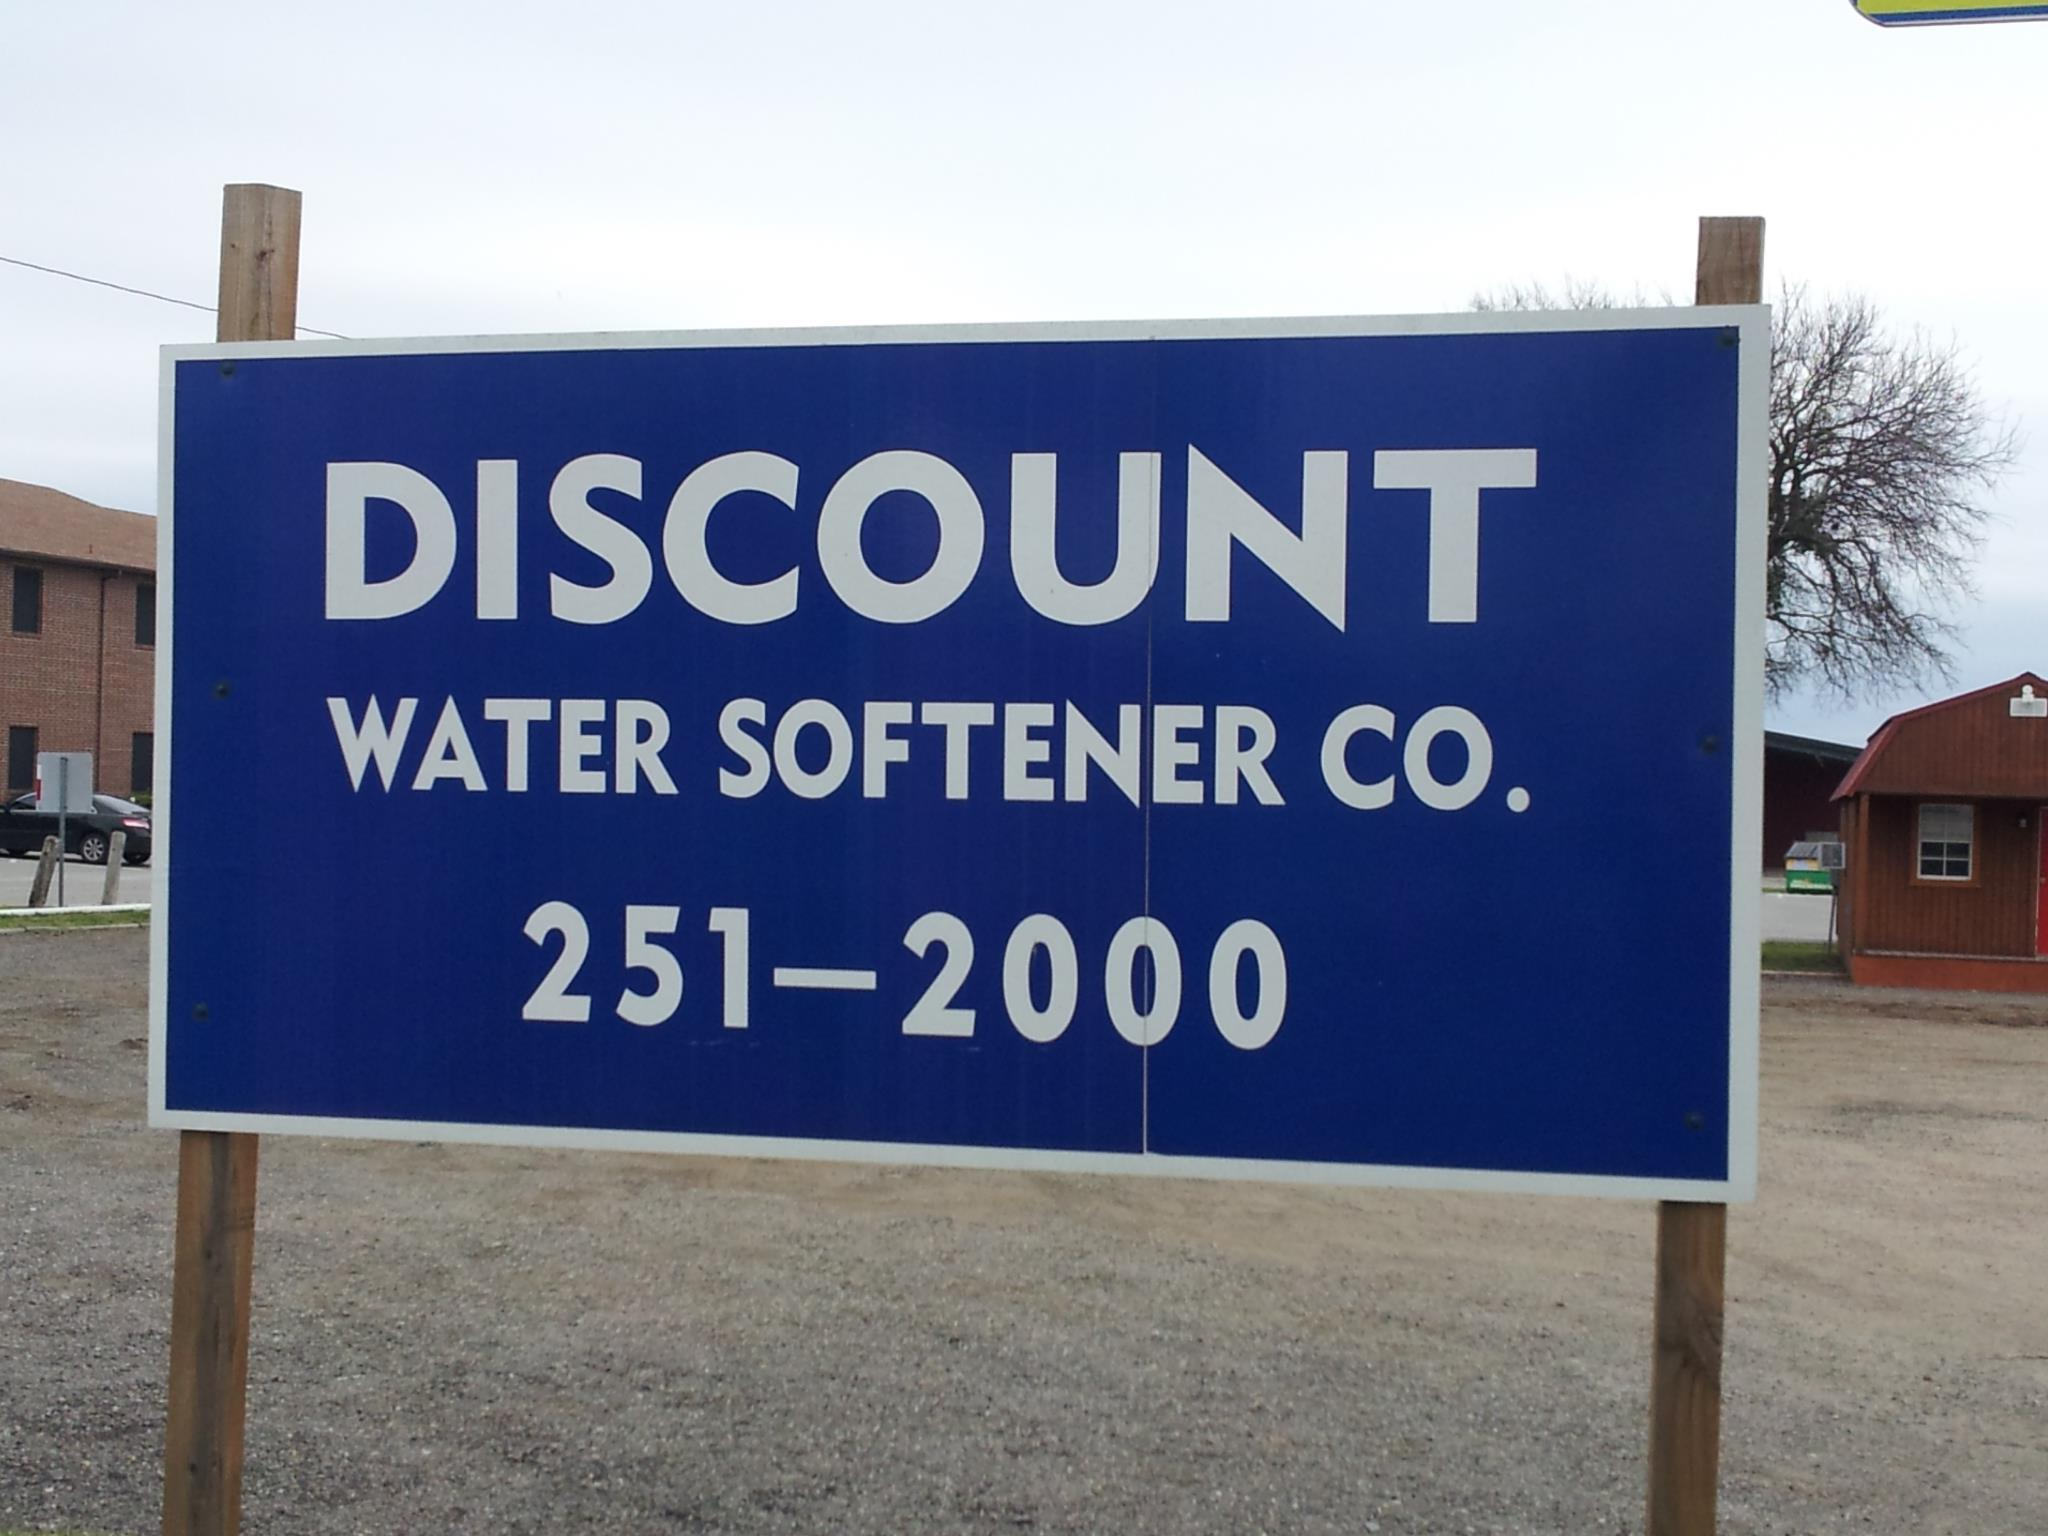 Discount Water Softener Co. image 4